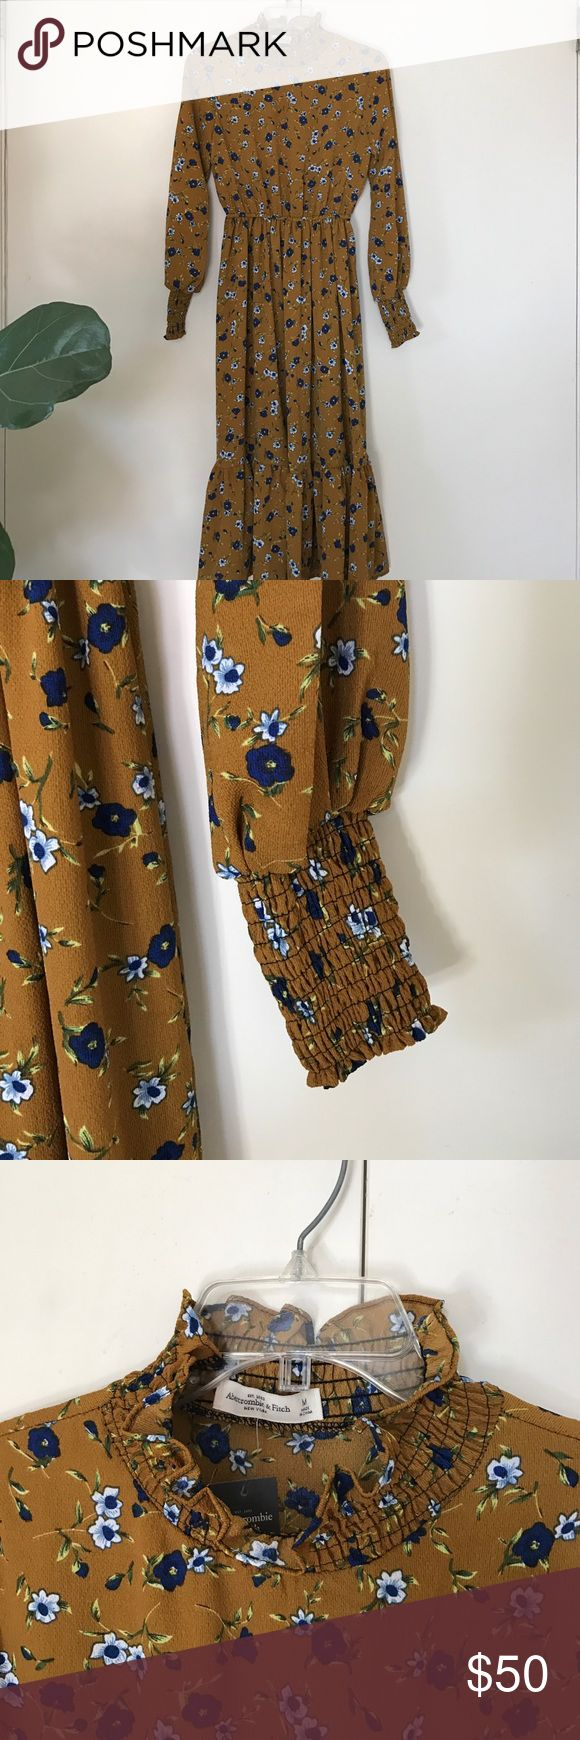 Abercrombie & Fitch Floral dress Classic Mustard color Dress with Blue and white flowers. Abercrombie & Fitch Dresses Long Sleeve